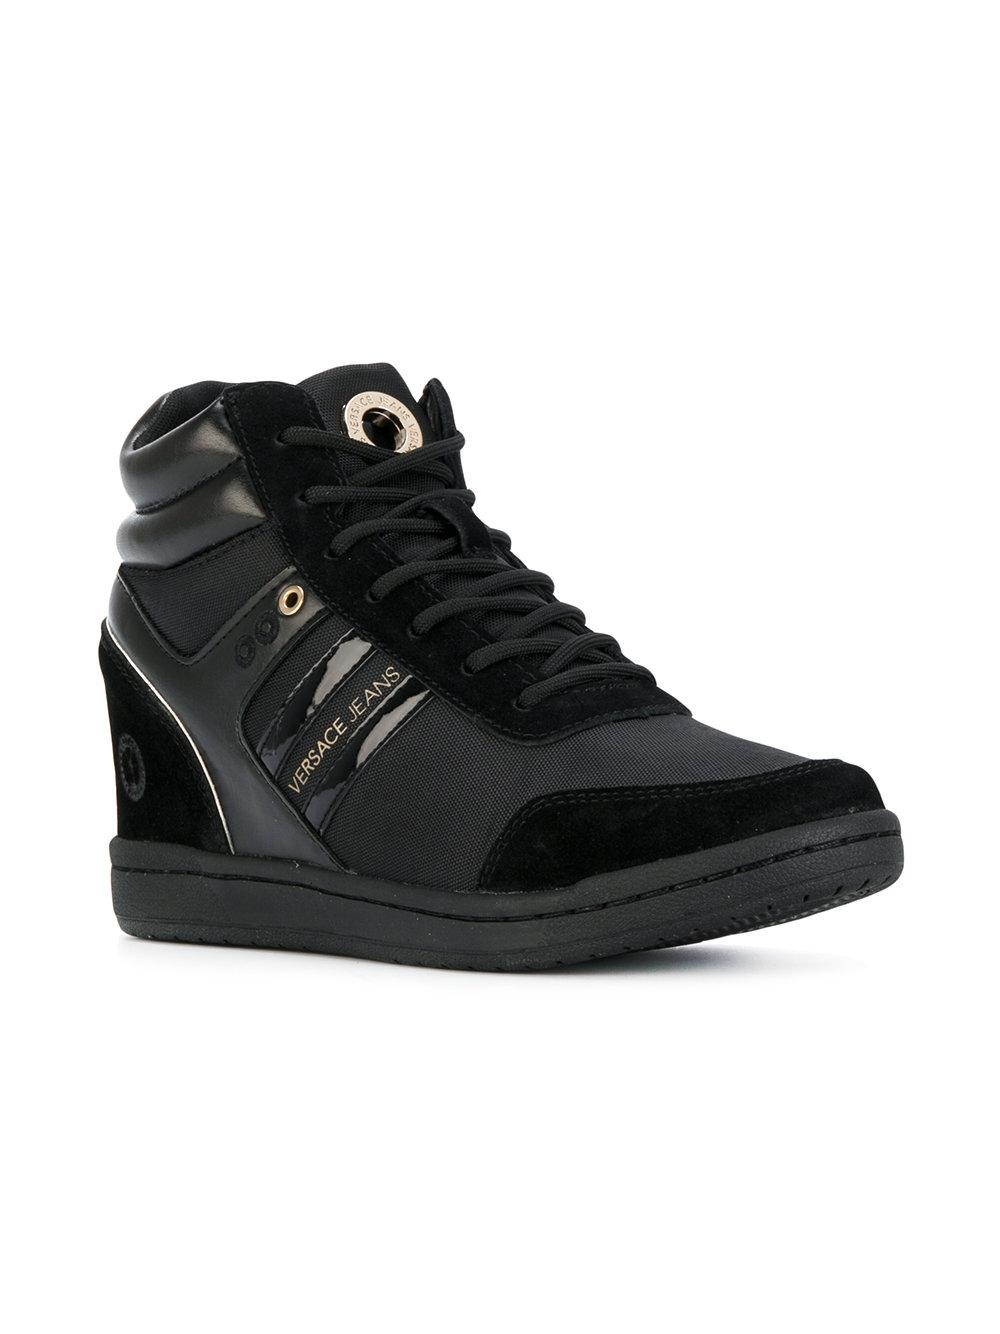 5ffd3da13352 Lyst - Versace Jeans Concealed Wedge Sneakers in Black for Men